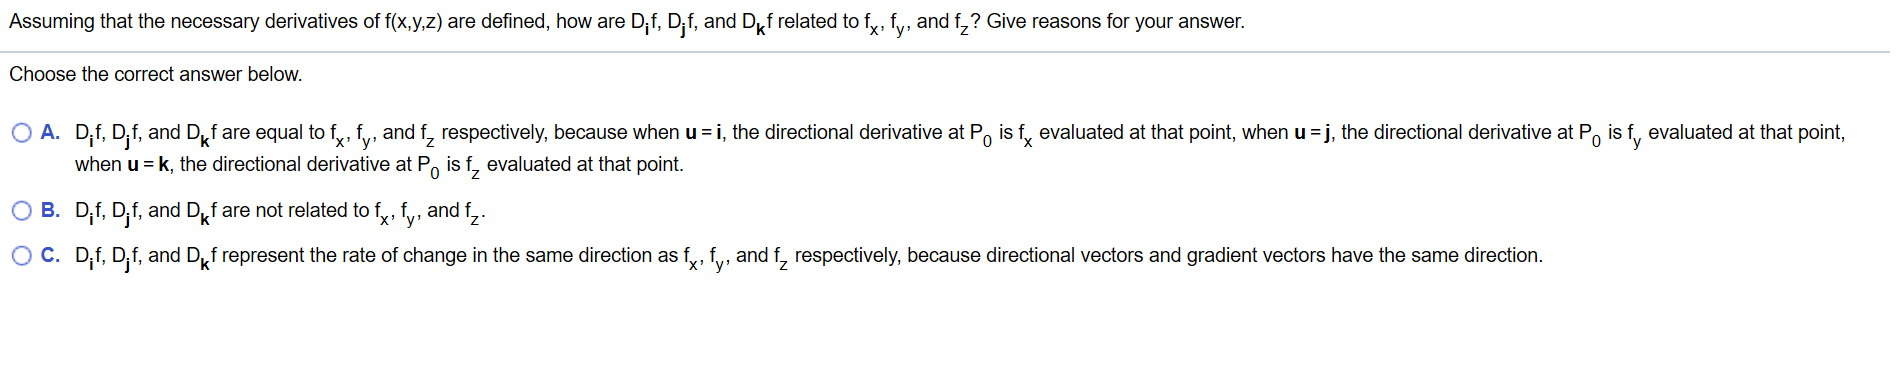 Assuming that the necessary derivatives of f(x,y,z) are defined, how are Dif, Dif, and Df related to f, fy, and f,? Give reasons for your answer. Choose the correct answer below. O A. D,f, D,f, and Df are equal to fy, fy, and f, respectively, because when u i, the directional derivative at Po is f, evaluated at that point, when u j, the directional derivative at Po is f, evaluated at that point, when u k, the directional derivative at Po is f, evaluated at that point 0 X O B. D,f, D,f, and Df are not related to fy, fv, and f,. O C. D,f, D,f, and Df represent the rate of change in the same direction as fy, f, and f, respectively, because directional vectors and gradient vectors have the same direction.